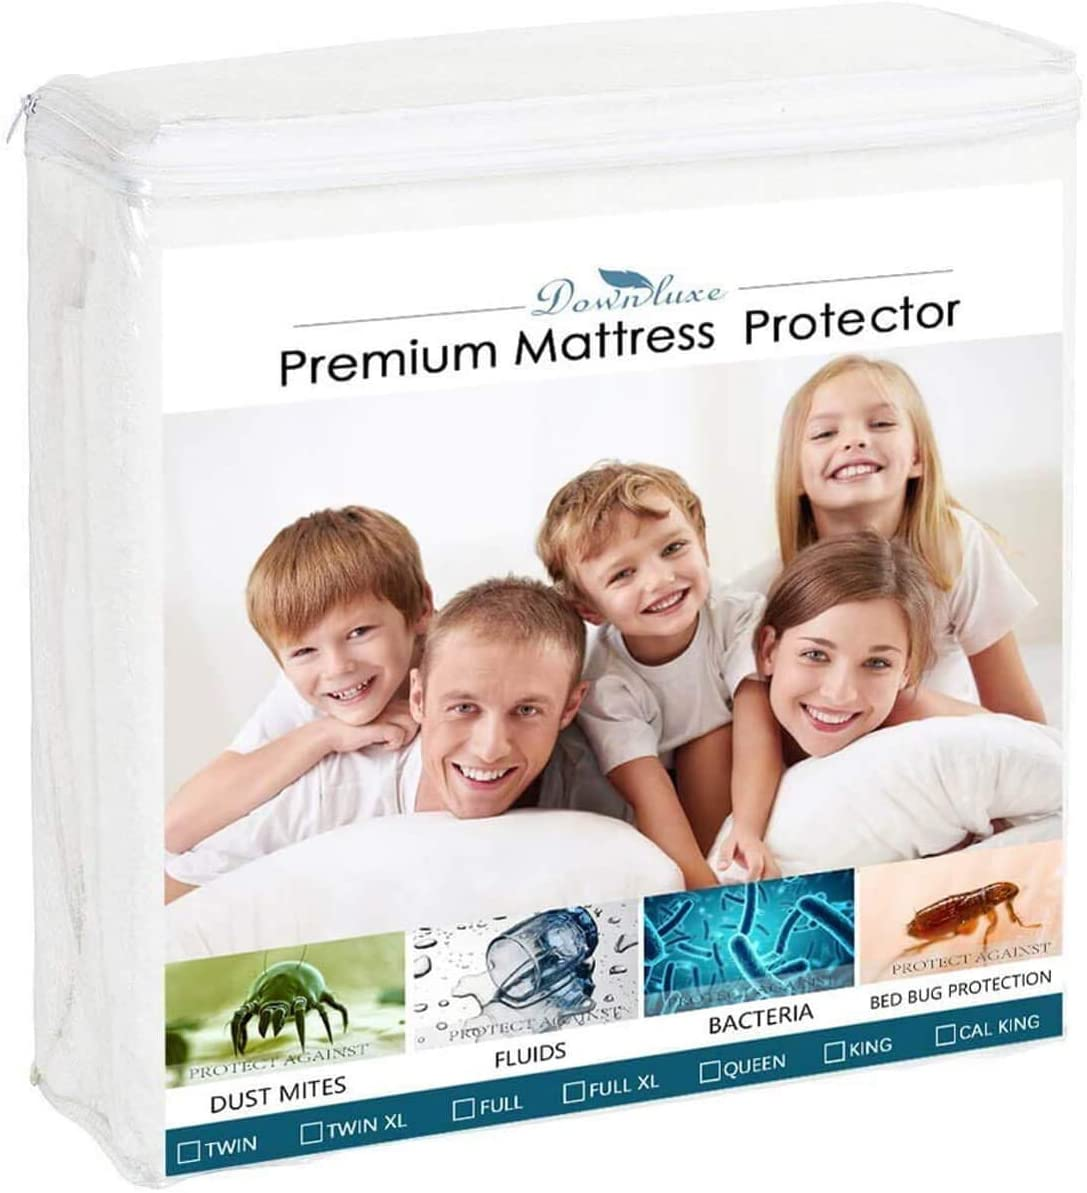 Premium Hypoallergenic Waterproof Mattress Protector - Mattress from Liquids, Dust Mites, and Allergens - Fitted Cotton Terry Cover (Full)